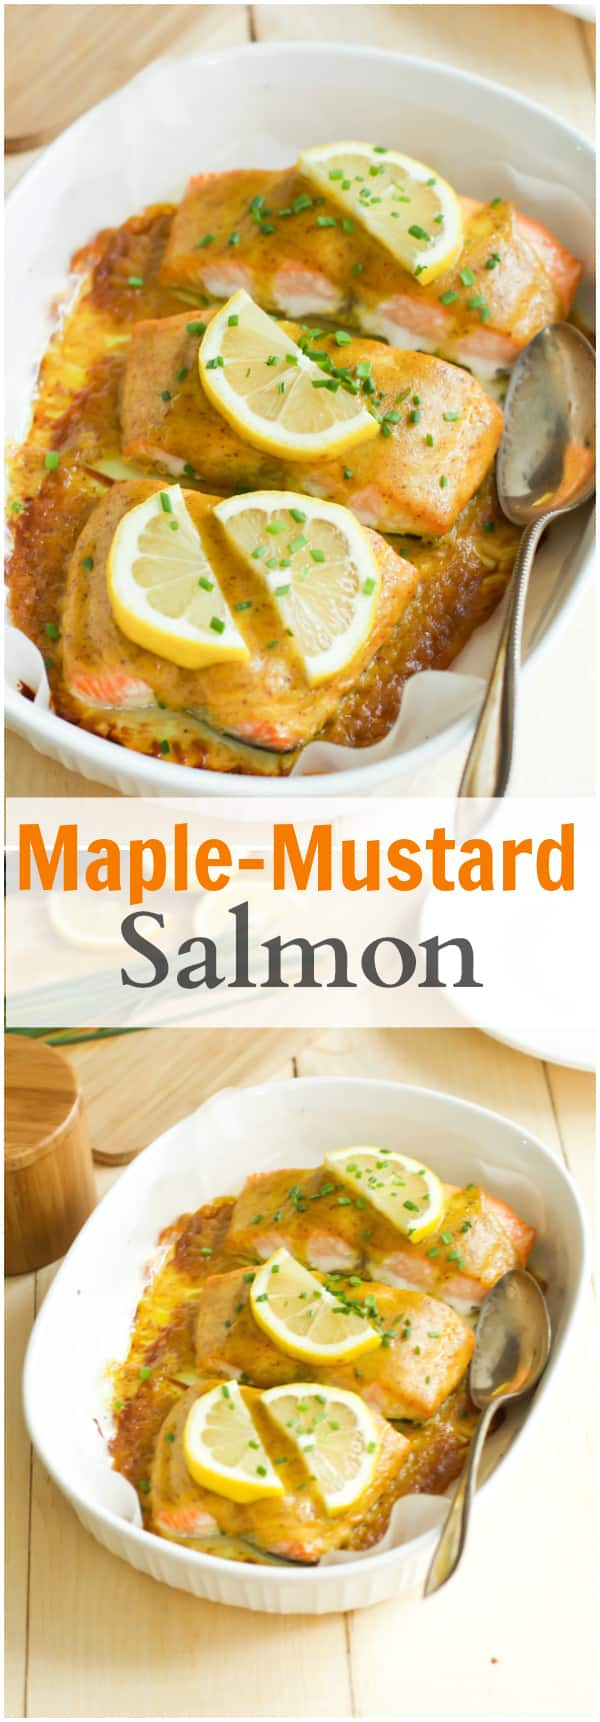 Maple-Mustard Salmon